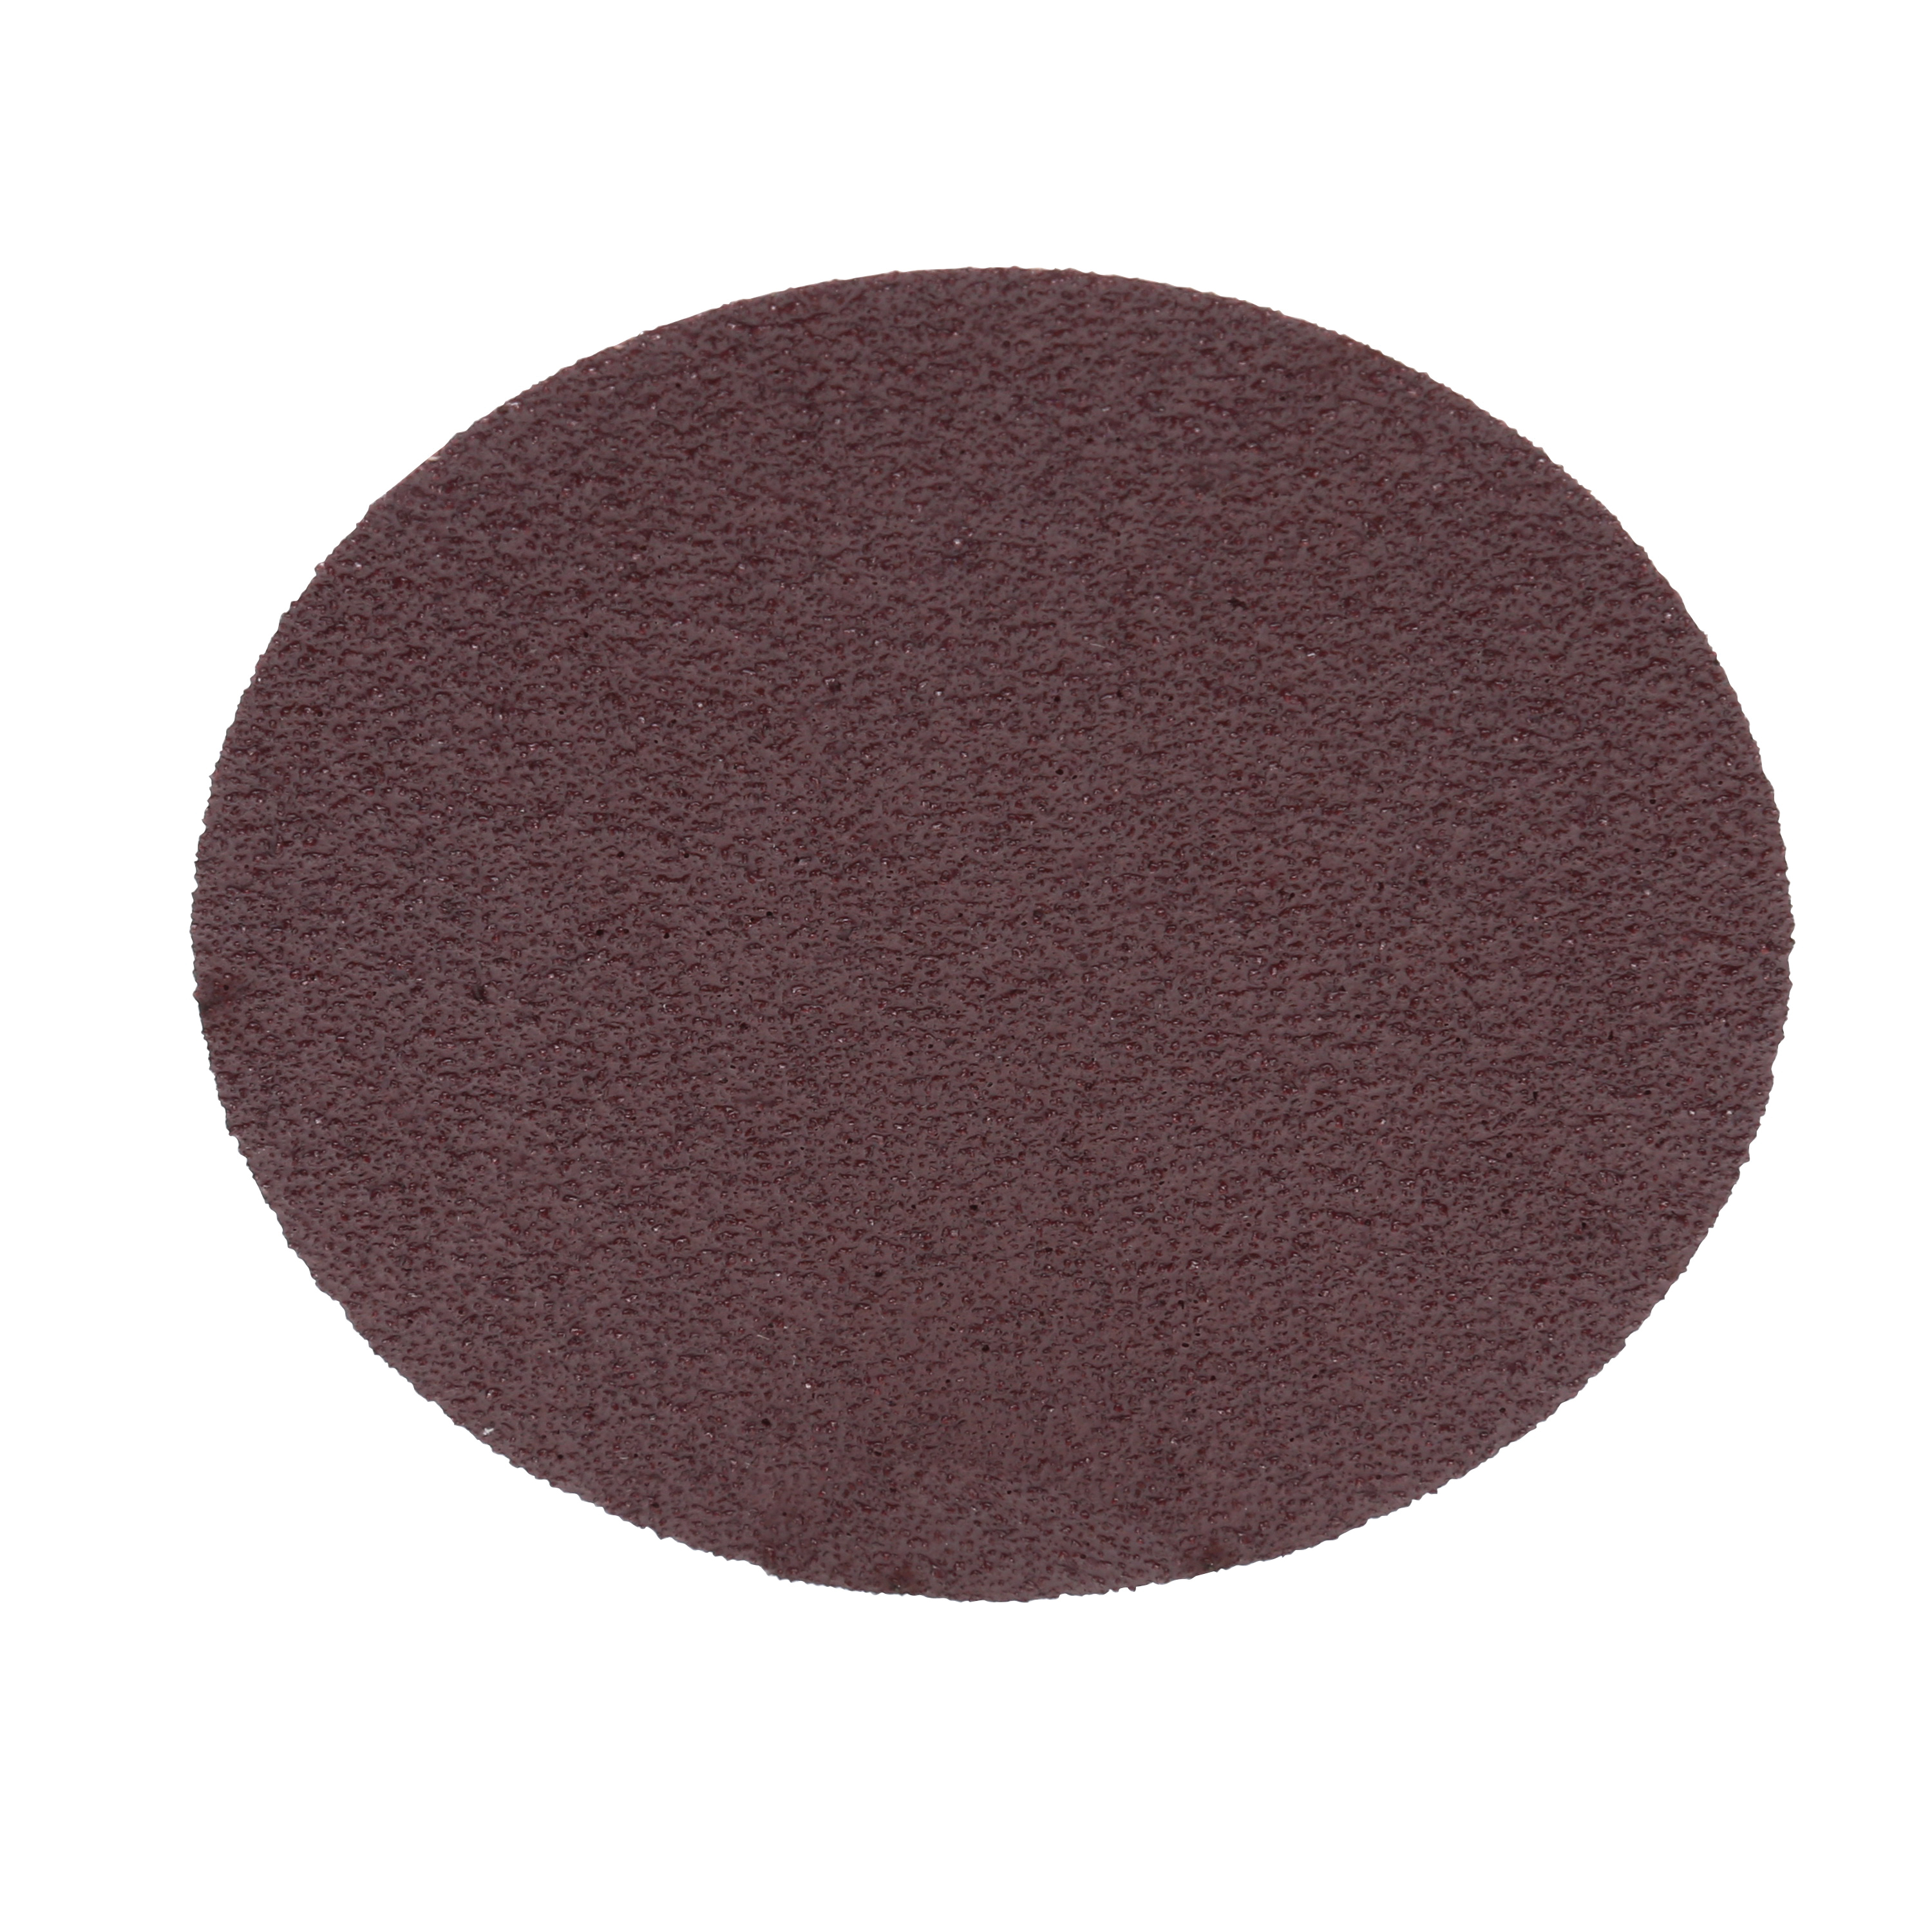 3M™ 051144-01333 Heavy Duty PSA Close Coated Abrasive Disc, 3 in Dia, 60 Grit, Medium Grade, Aluminum Oxide Abrasive, Cloth Backing